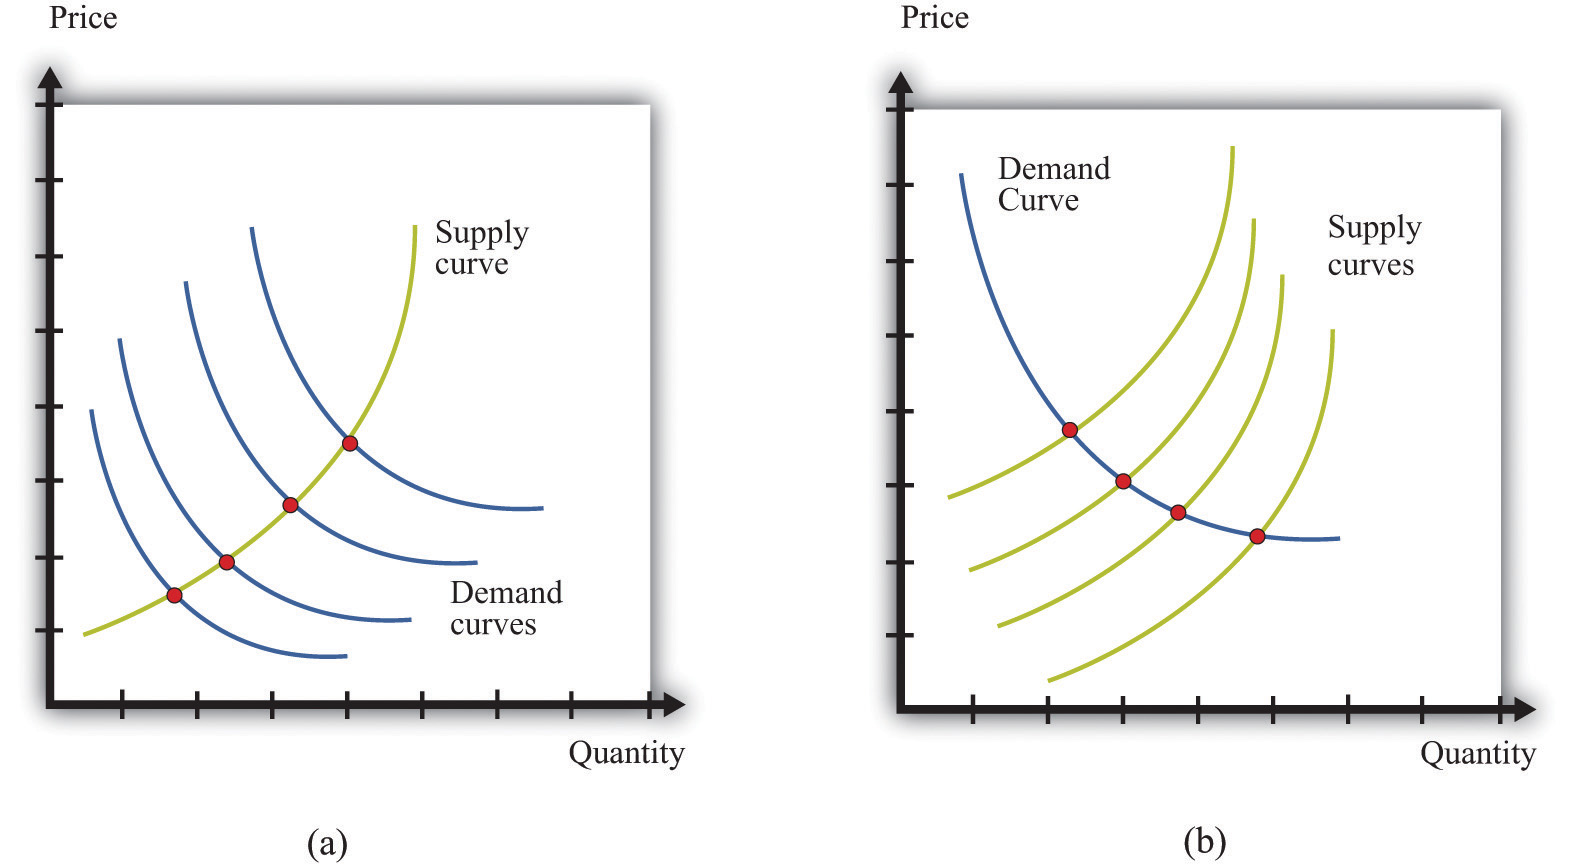 walmart s price elasticity of demand This was a post that you created earlier i related it to walmart my followup question is: what does this decision by wal-mart tell you about the price elasticity of the demand curve that it faces there are many ways that.